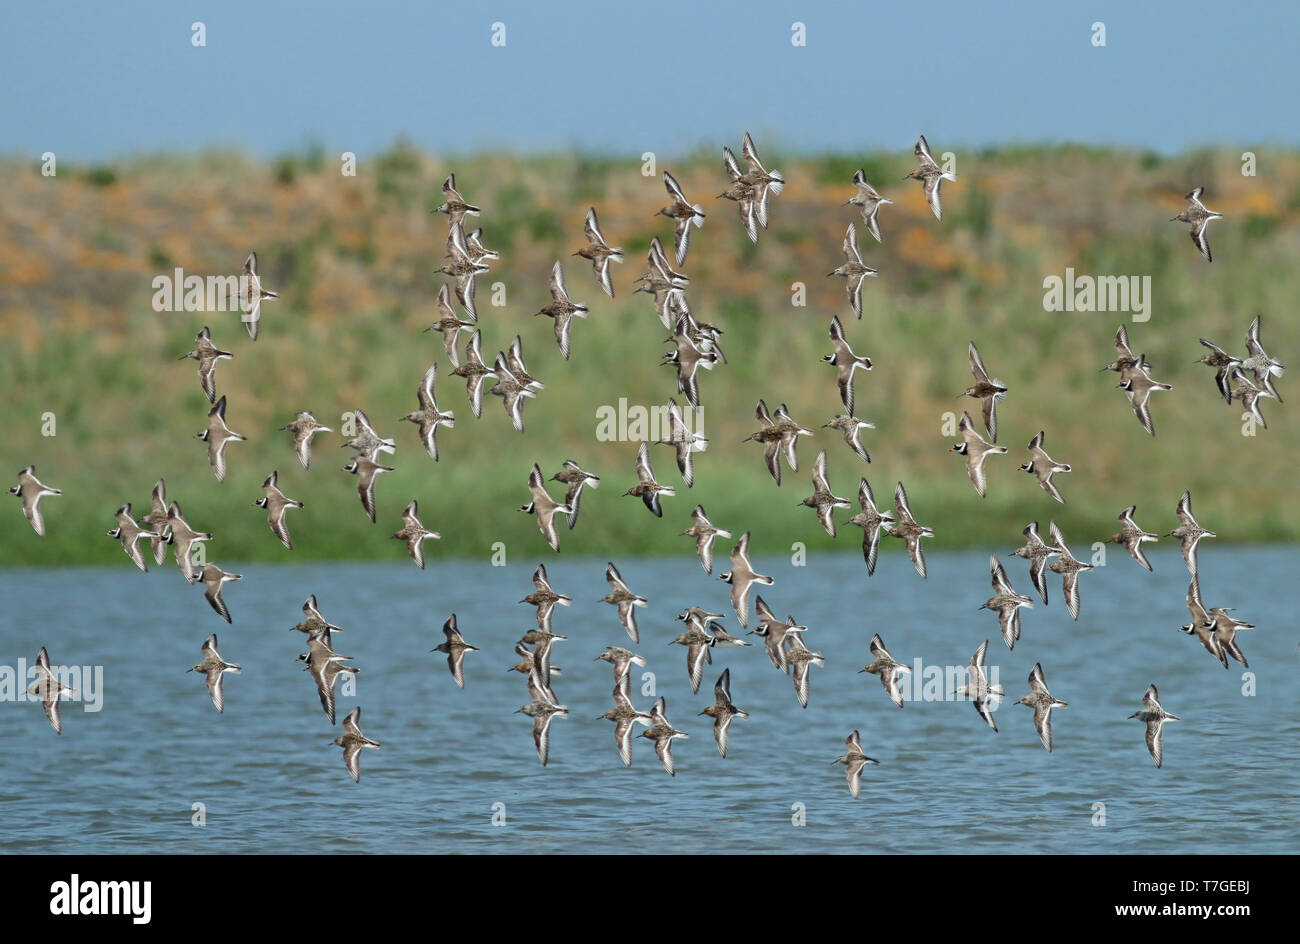 Mixed species wader flock at the Wadden Sea in the Netherlands. - Stock Image